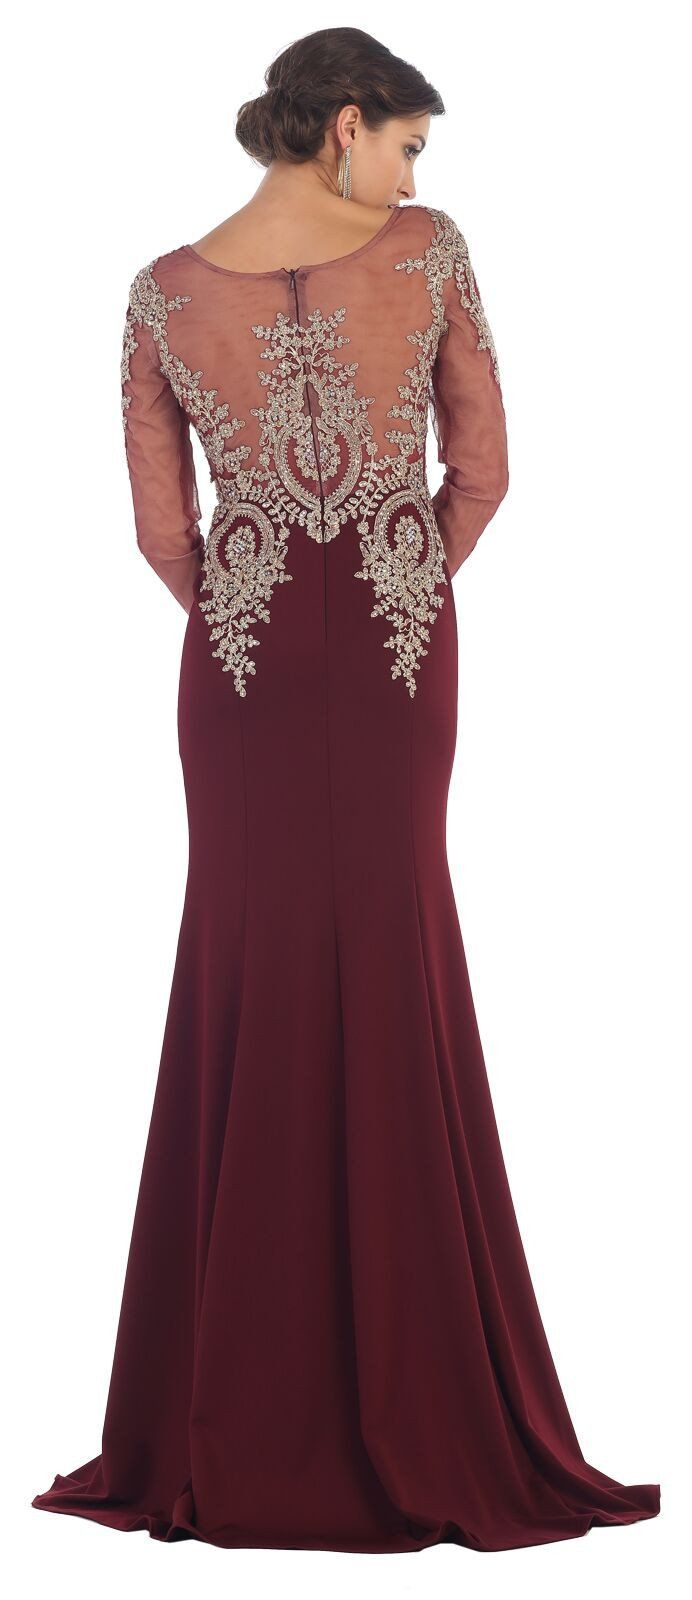 Long sleeve sexy formal evening dress in products